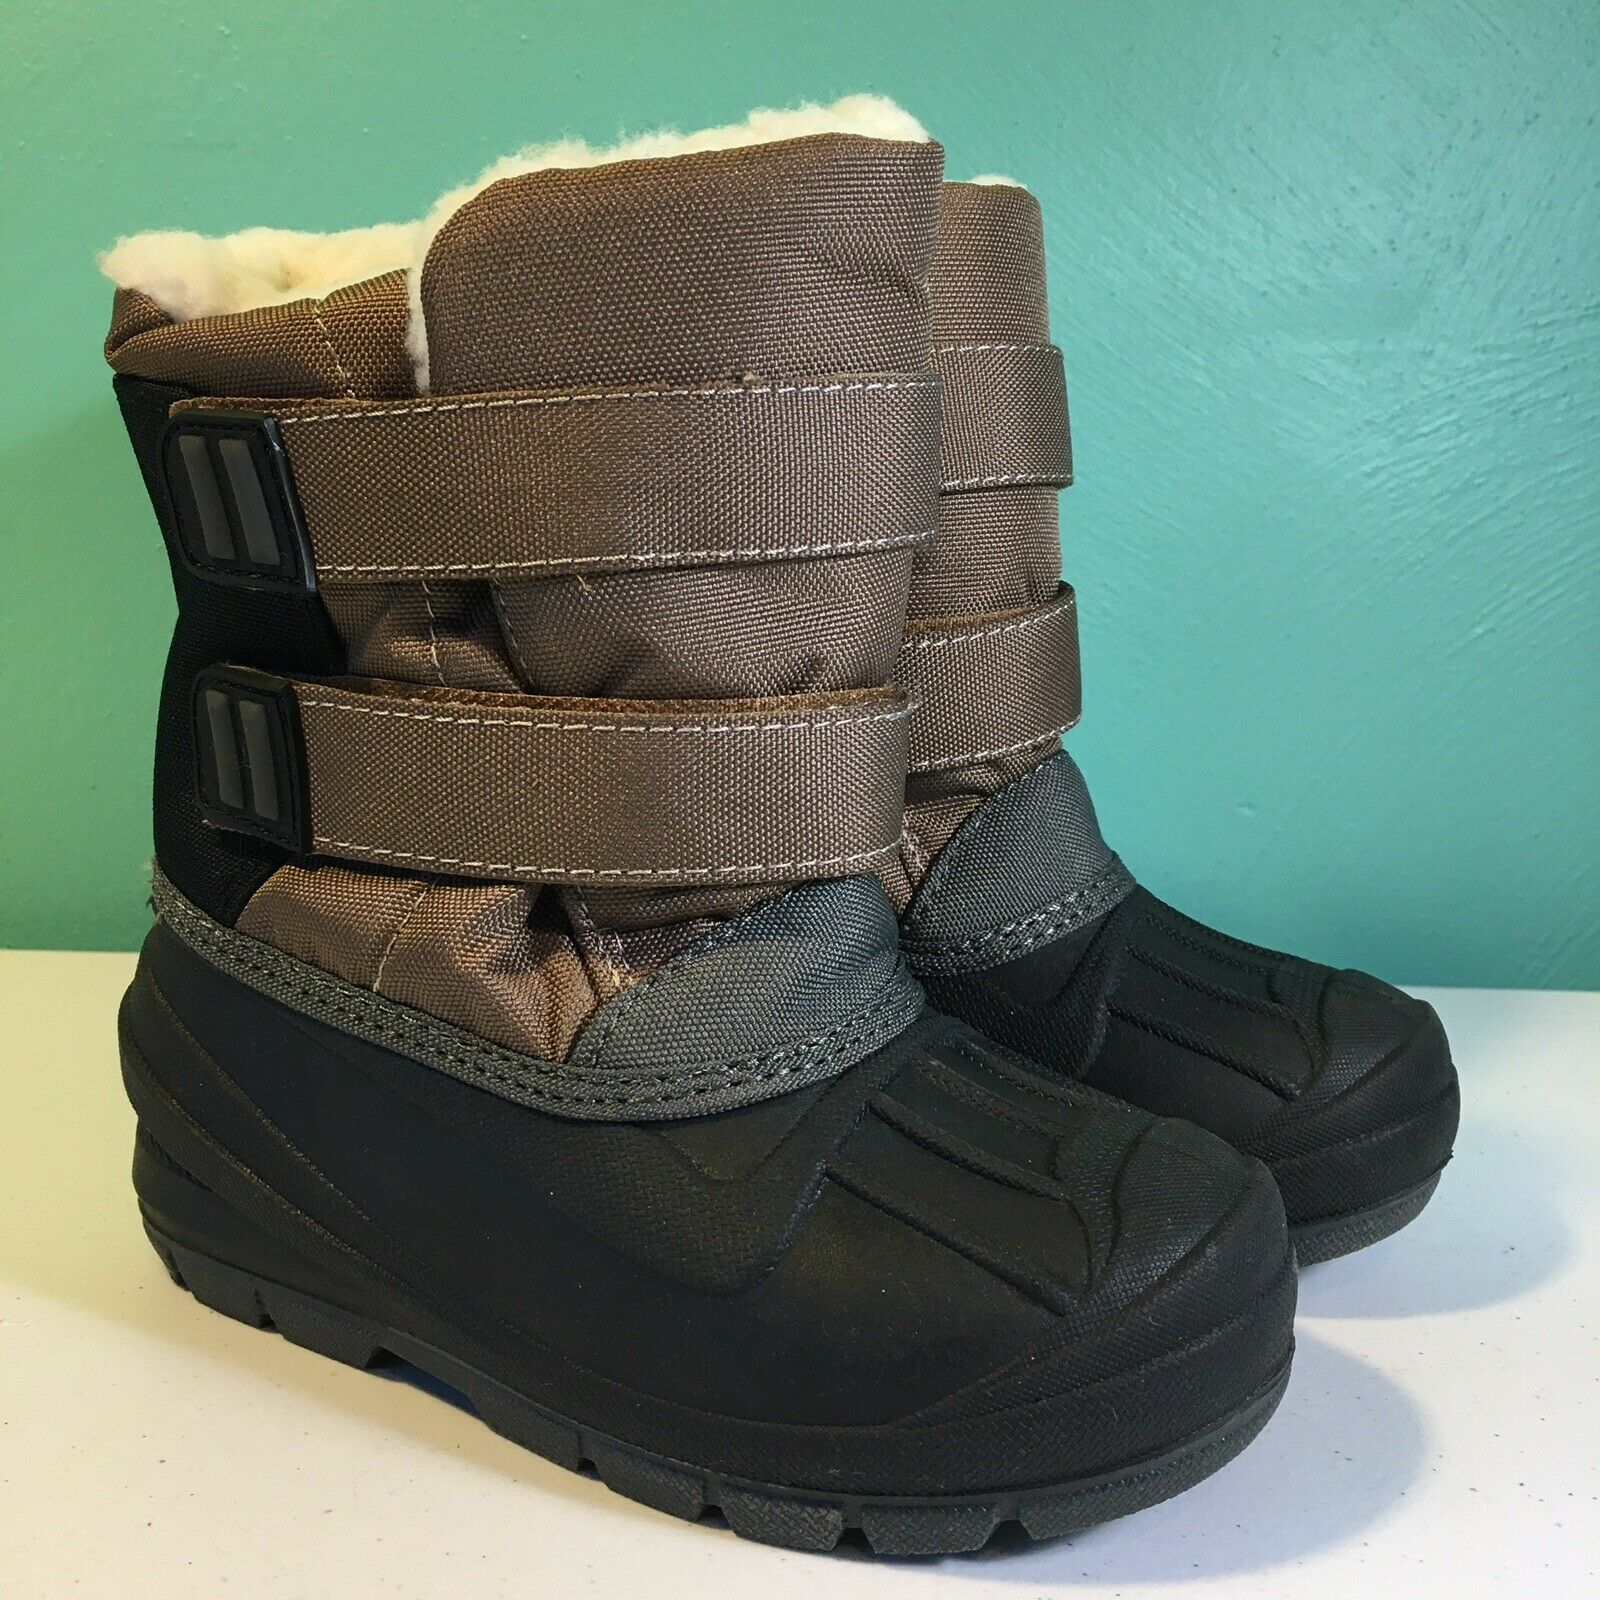 NWT Cat and Jack Toddler Girl Arias Winter Boots Black Sherpa Faux Fur Size 6